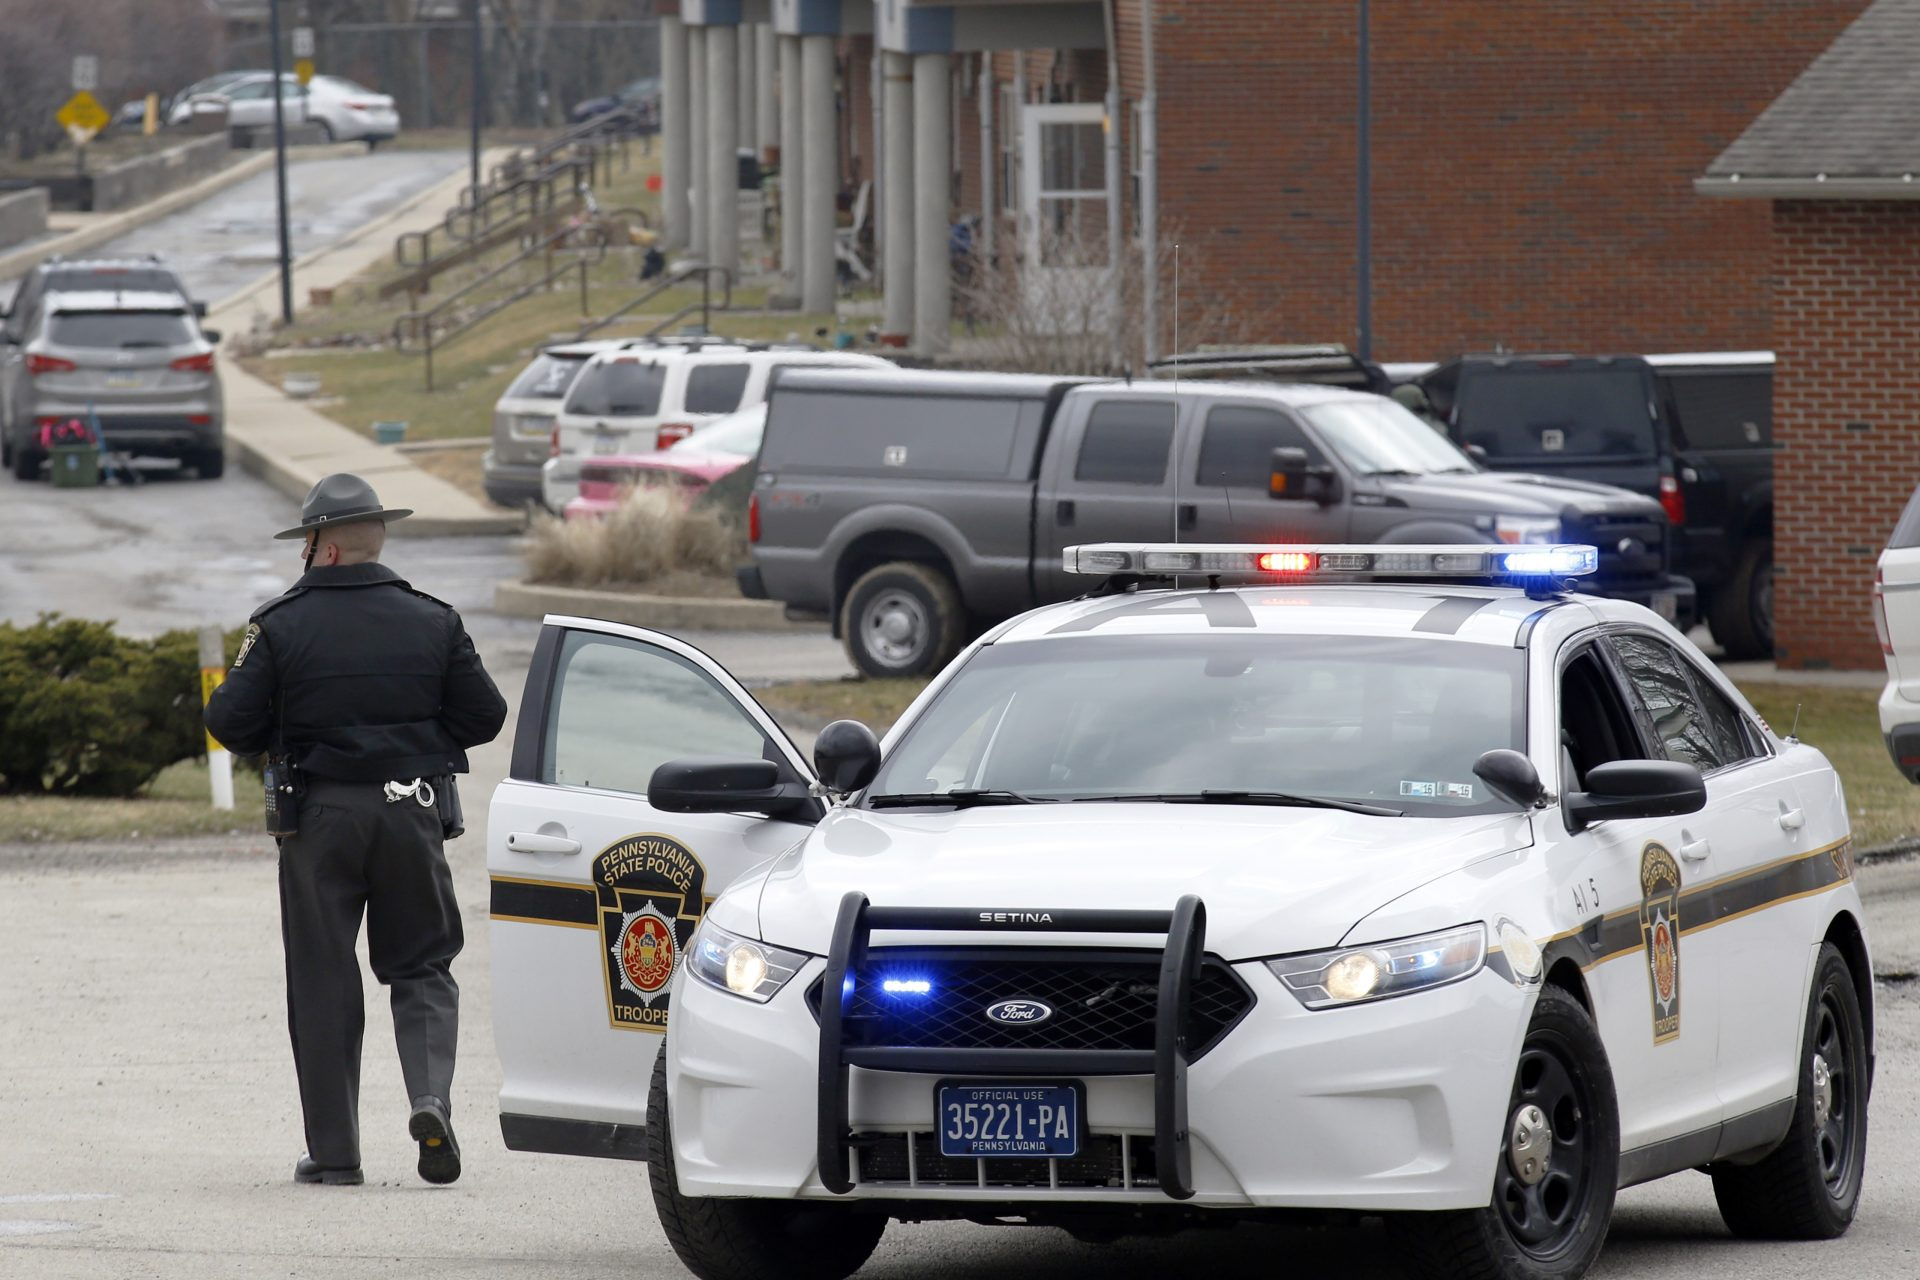 State Again Looks At Fees For Trooper Services